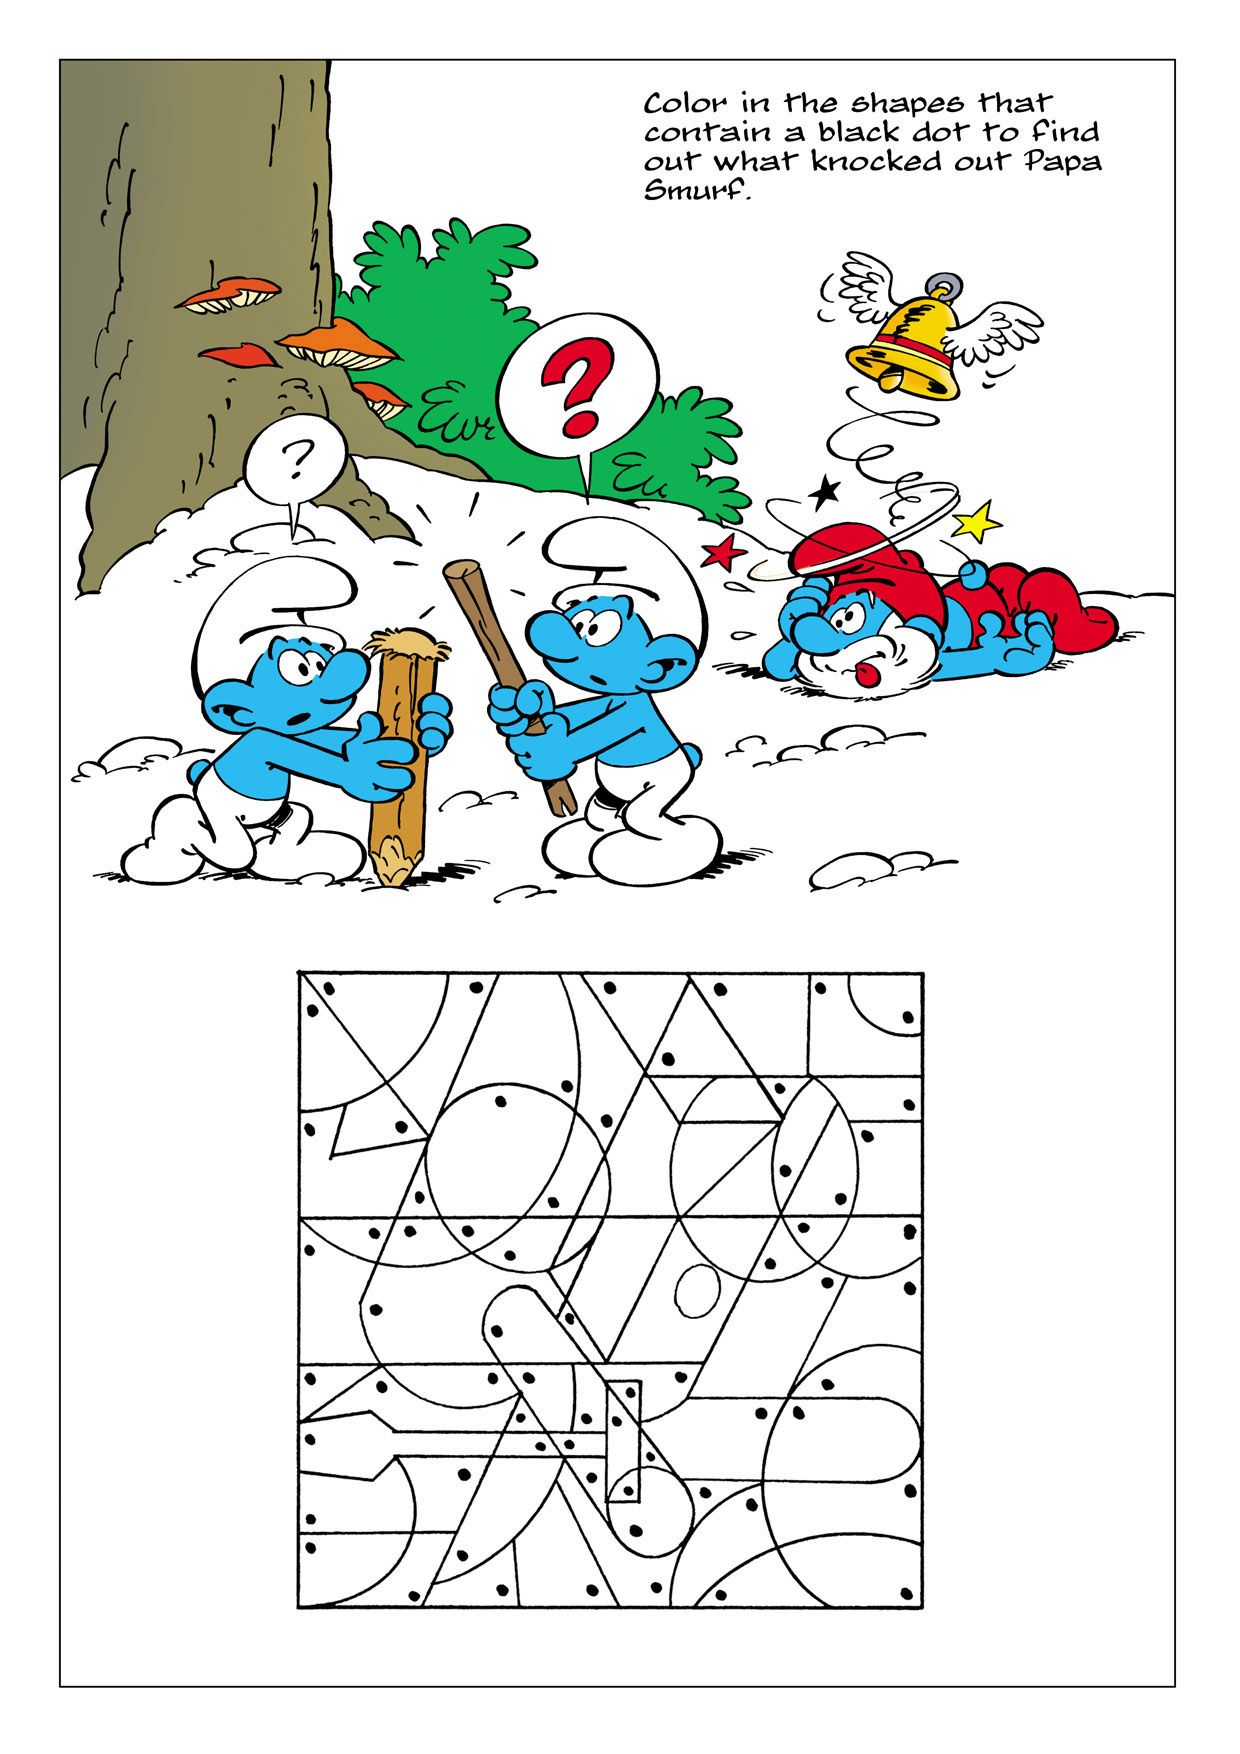 Smurf Pastime in 2020 | Smurfs, Activity sheets, Free ...